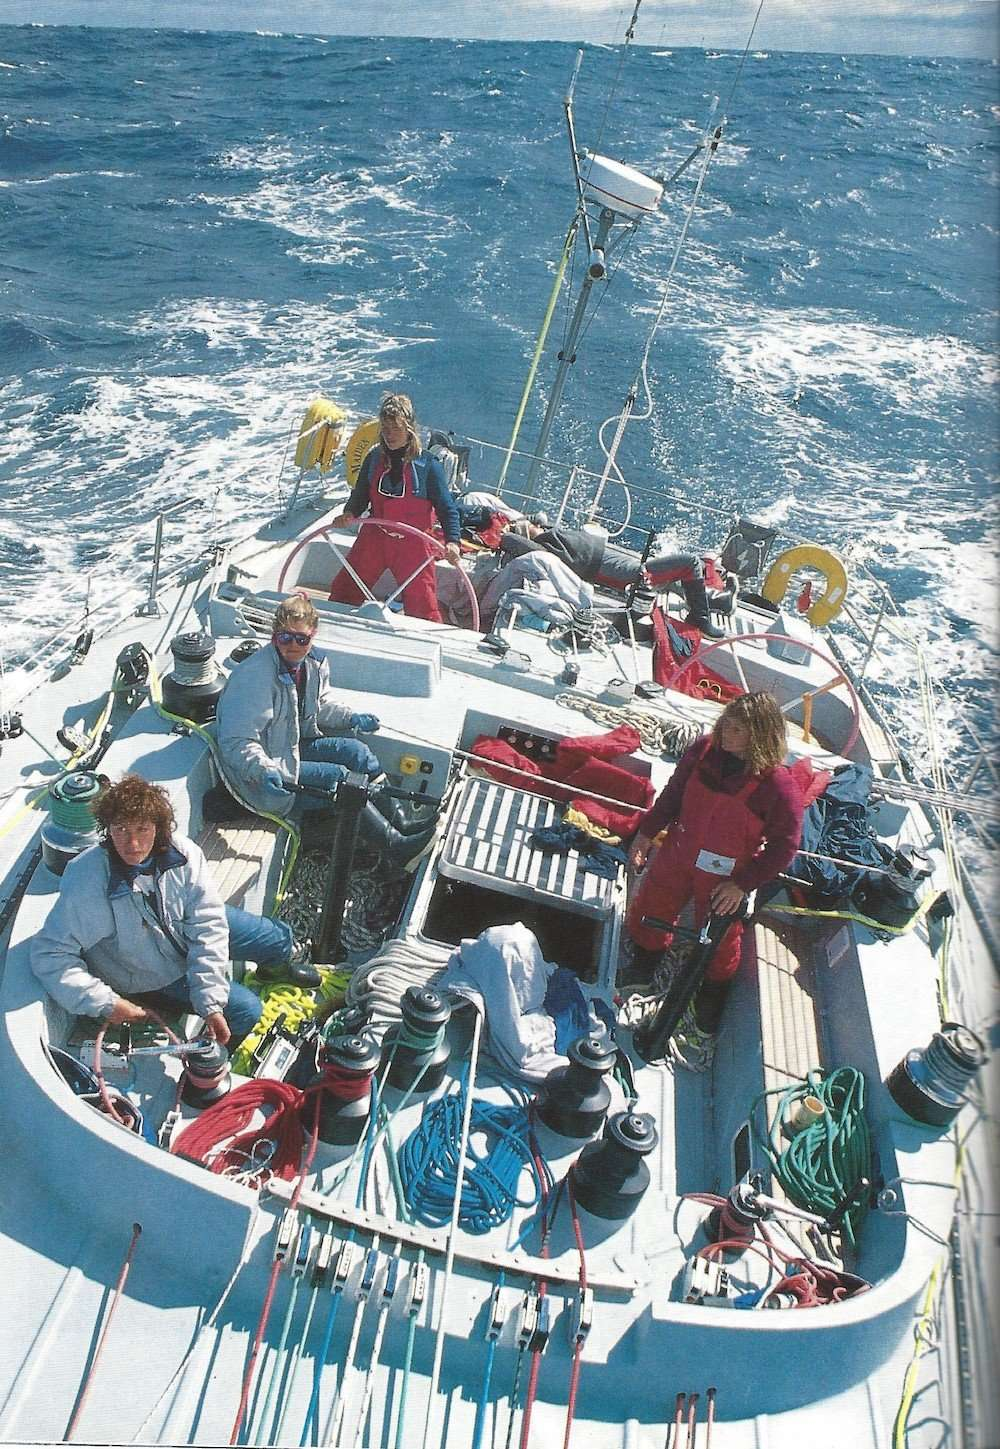 U0026 39 Maiden U0026 39 Review Tracy Edwards Documentary Sets Sail With